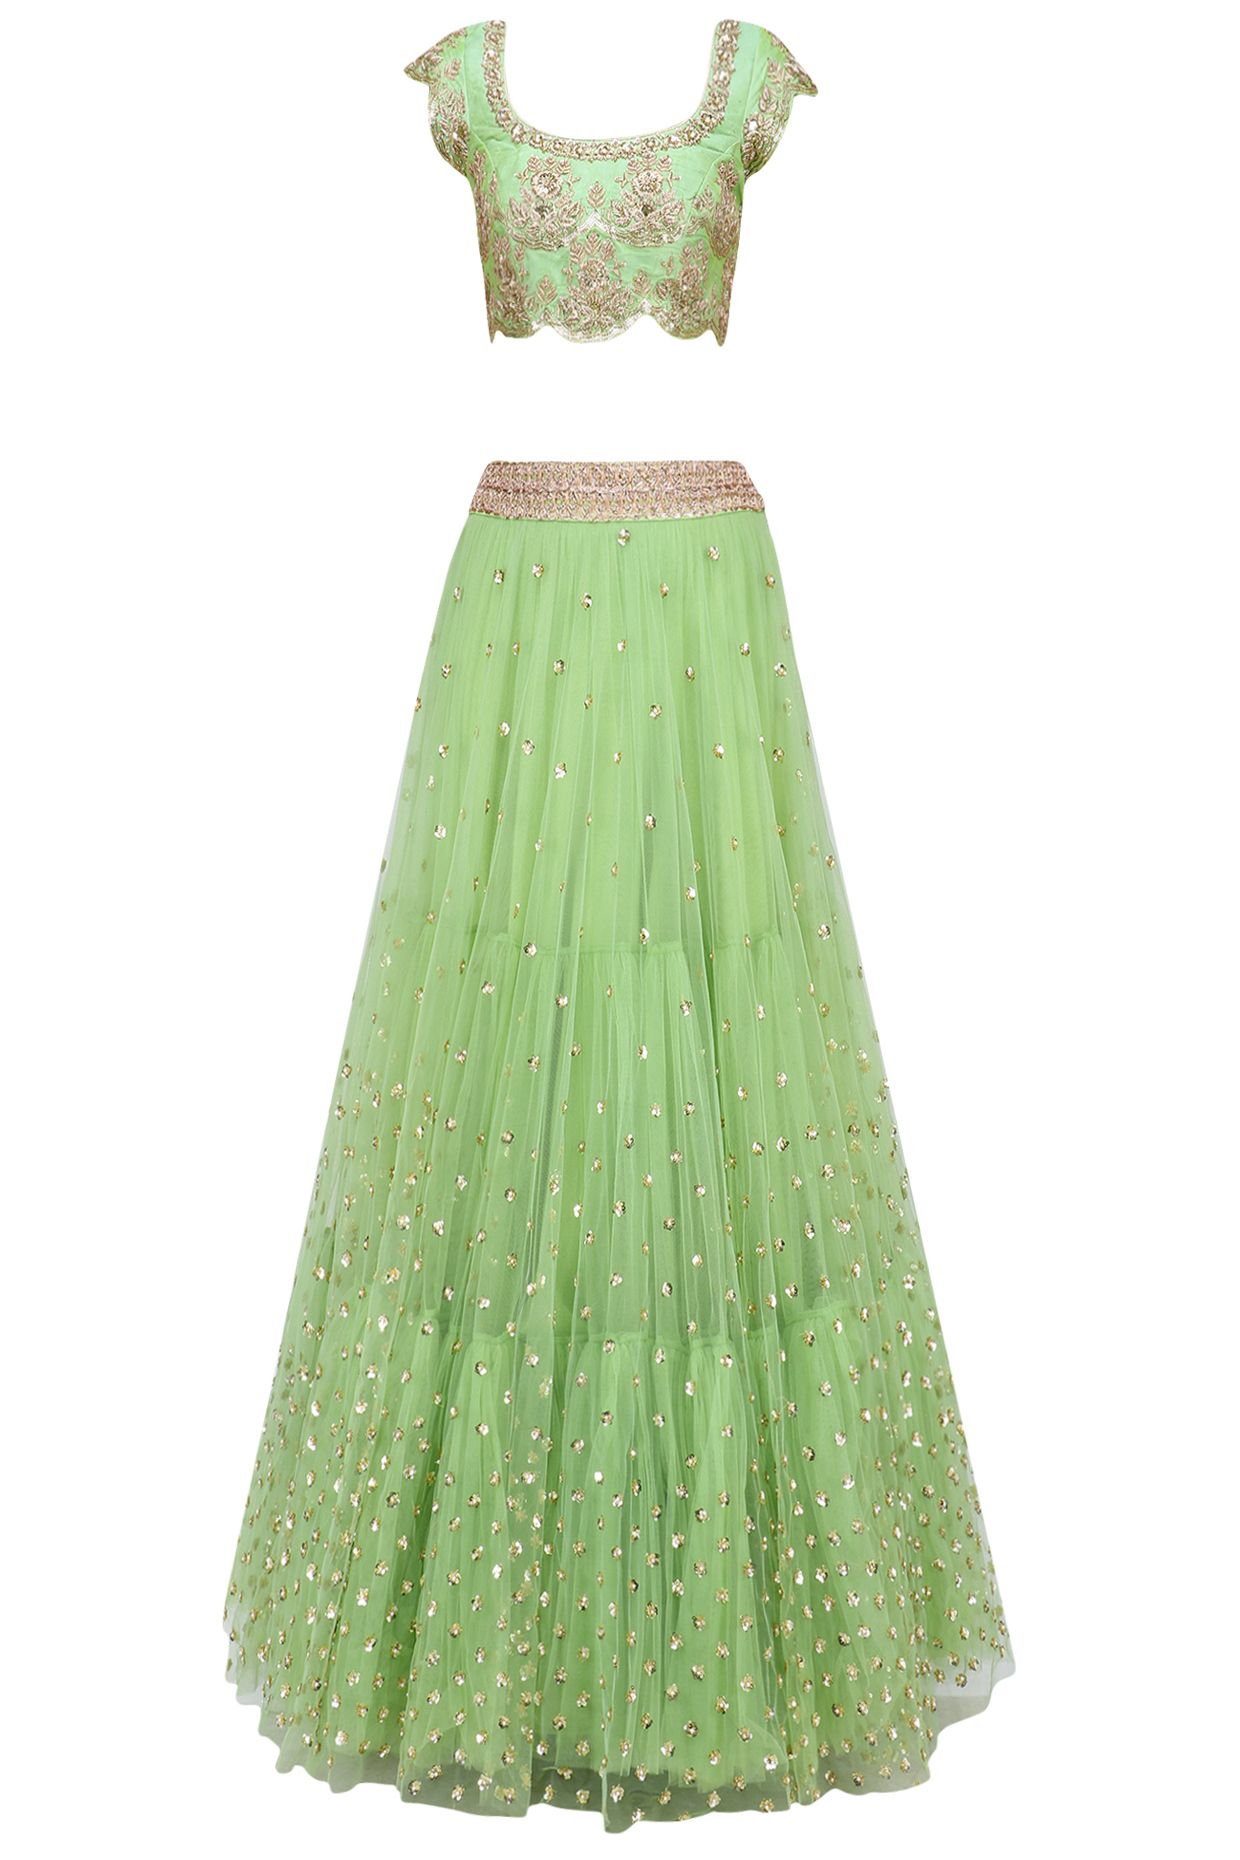 3ba41c2adffe Pista green floral sequins embroidered lehenga set with peach dupatta  available only at Pernia s Pop Up Shop.